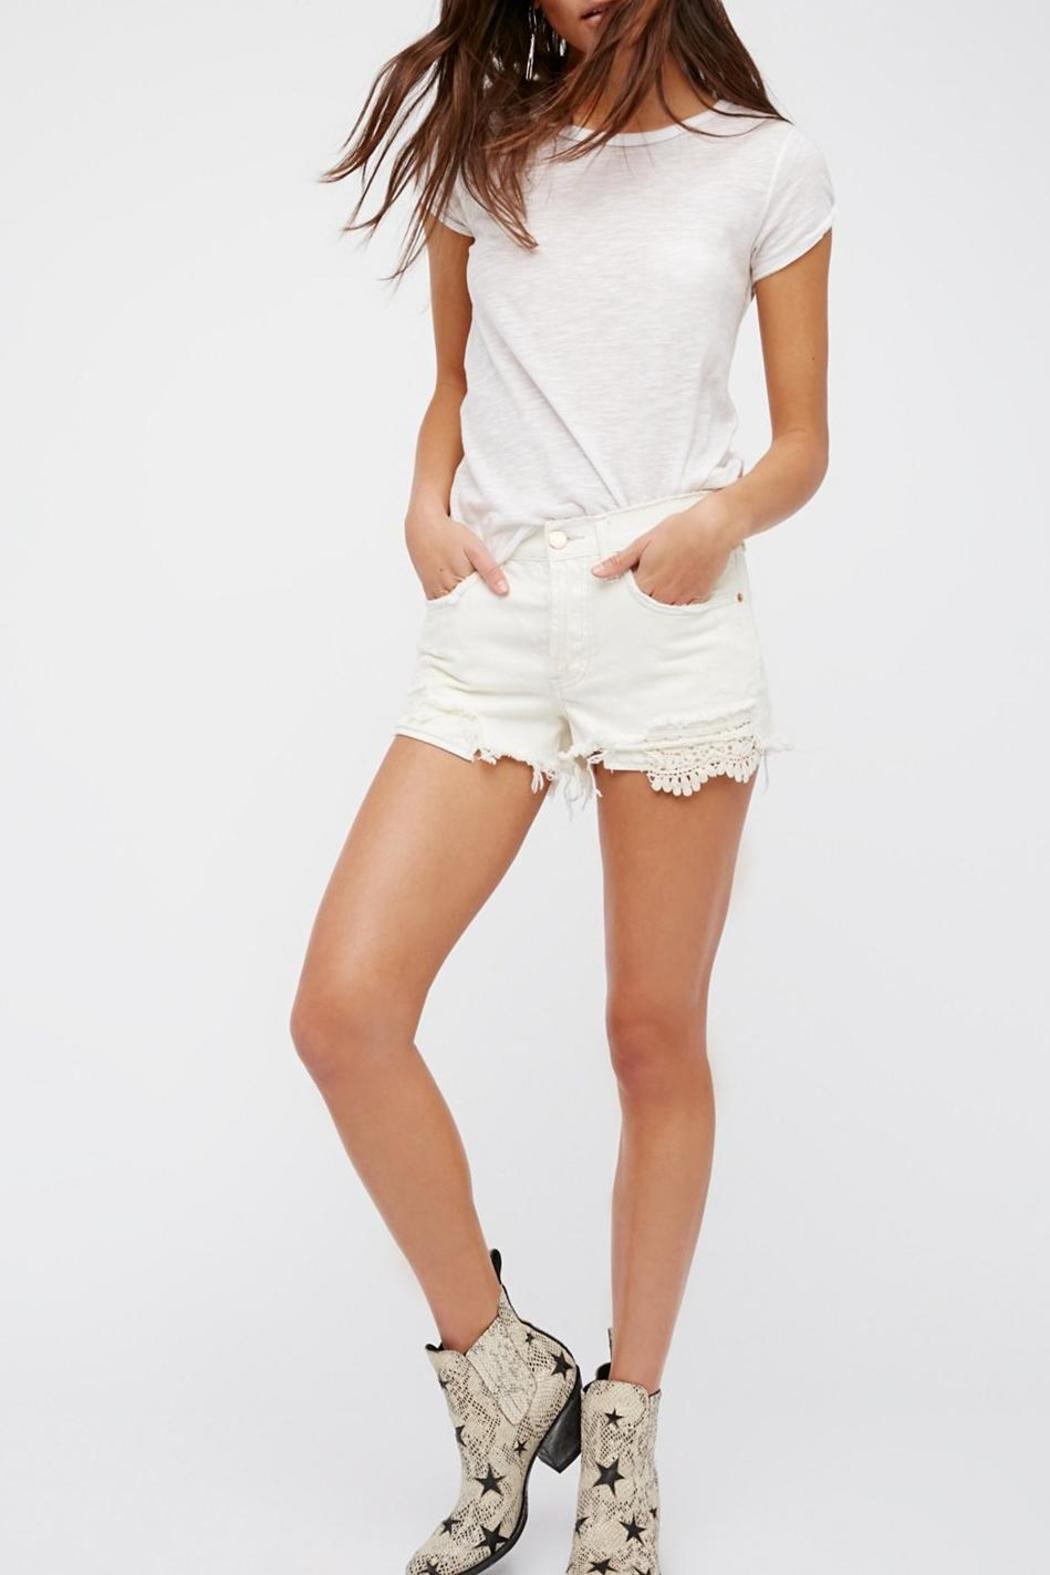 Free People Daisy Chain Lace Short - Main Image